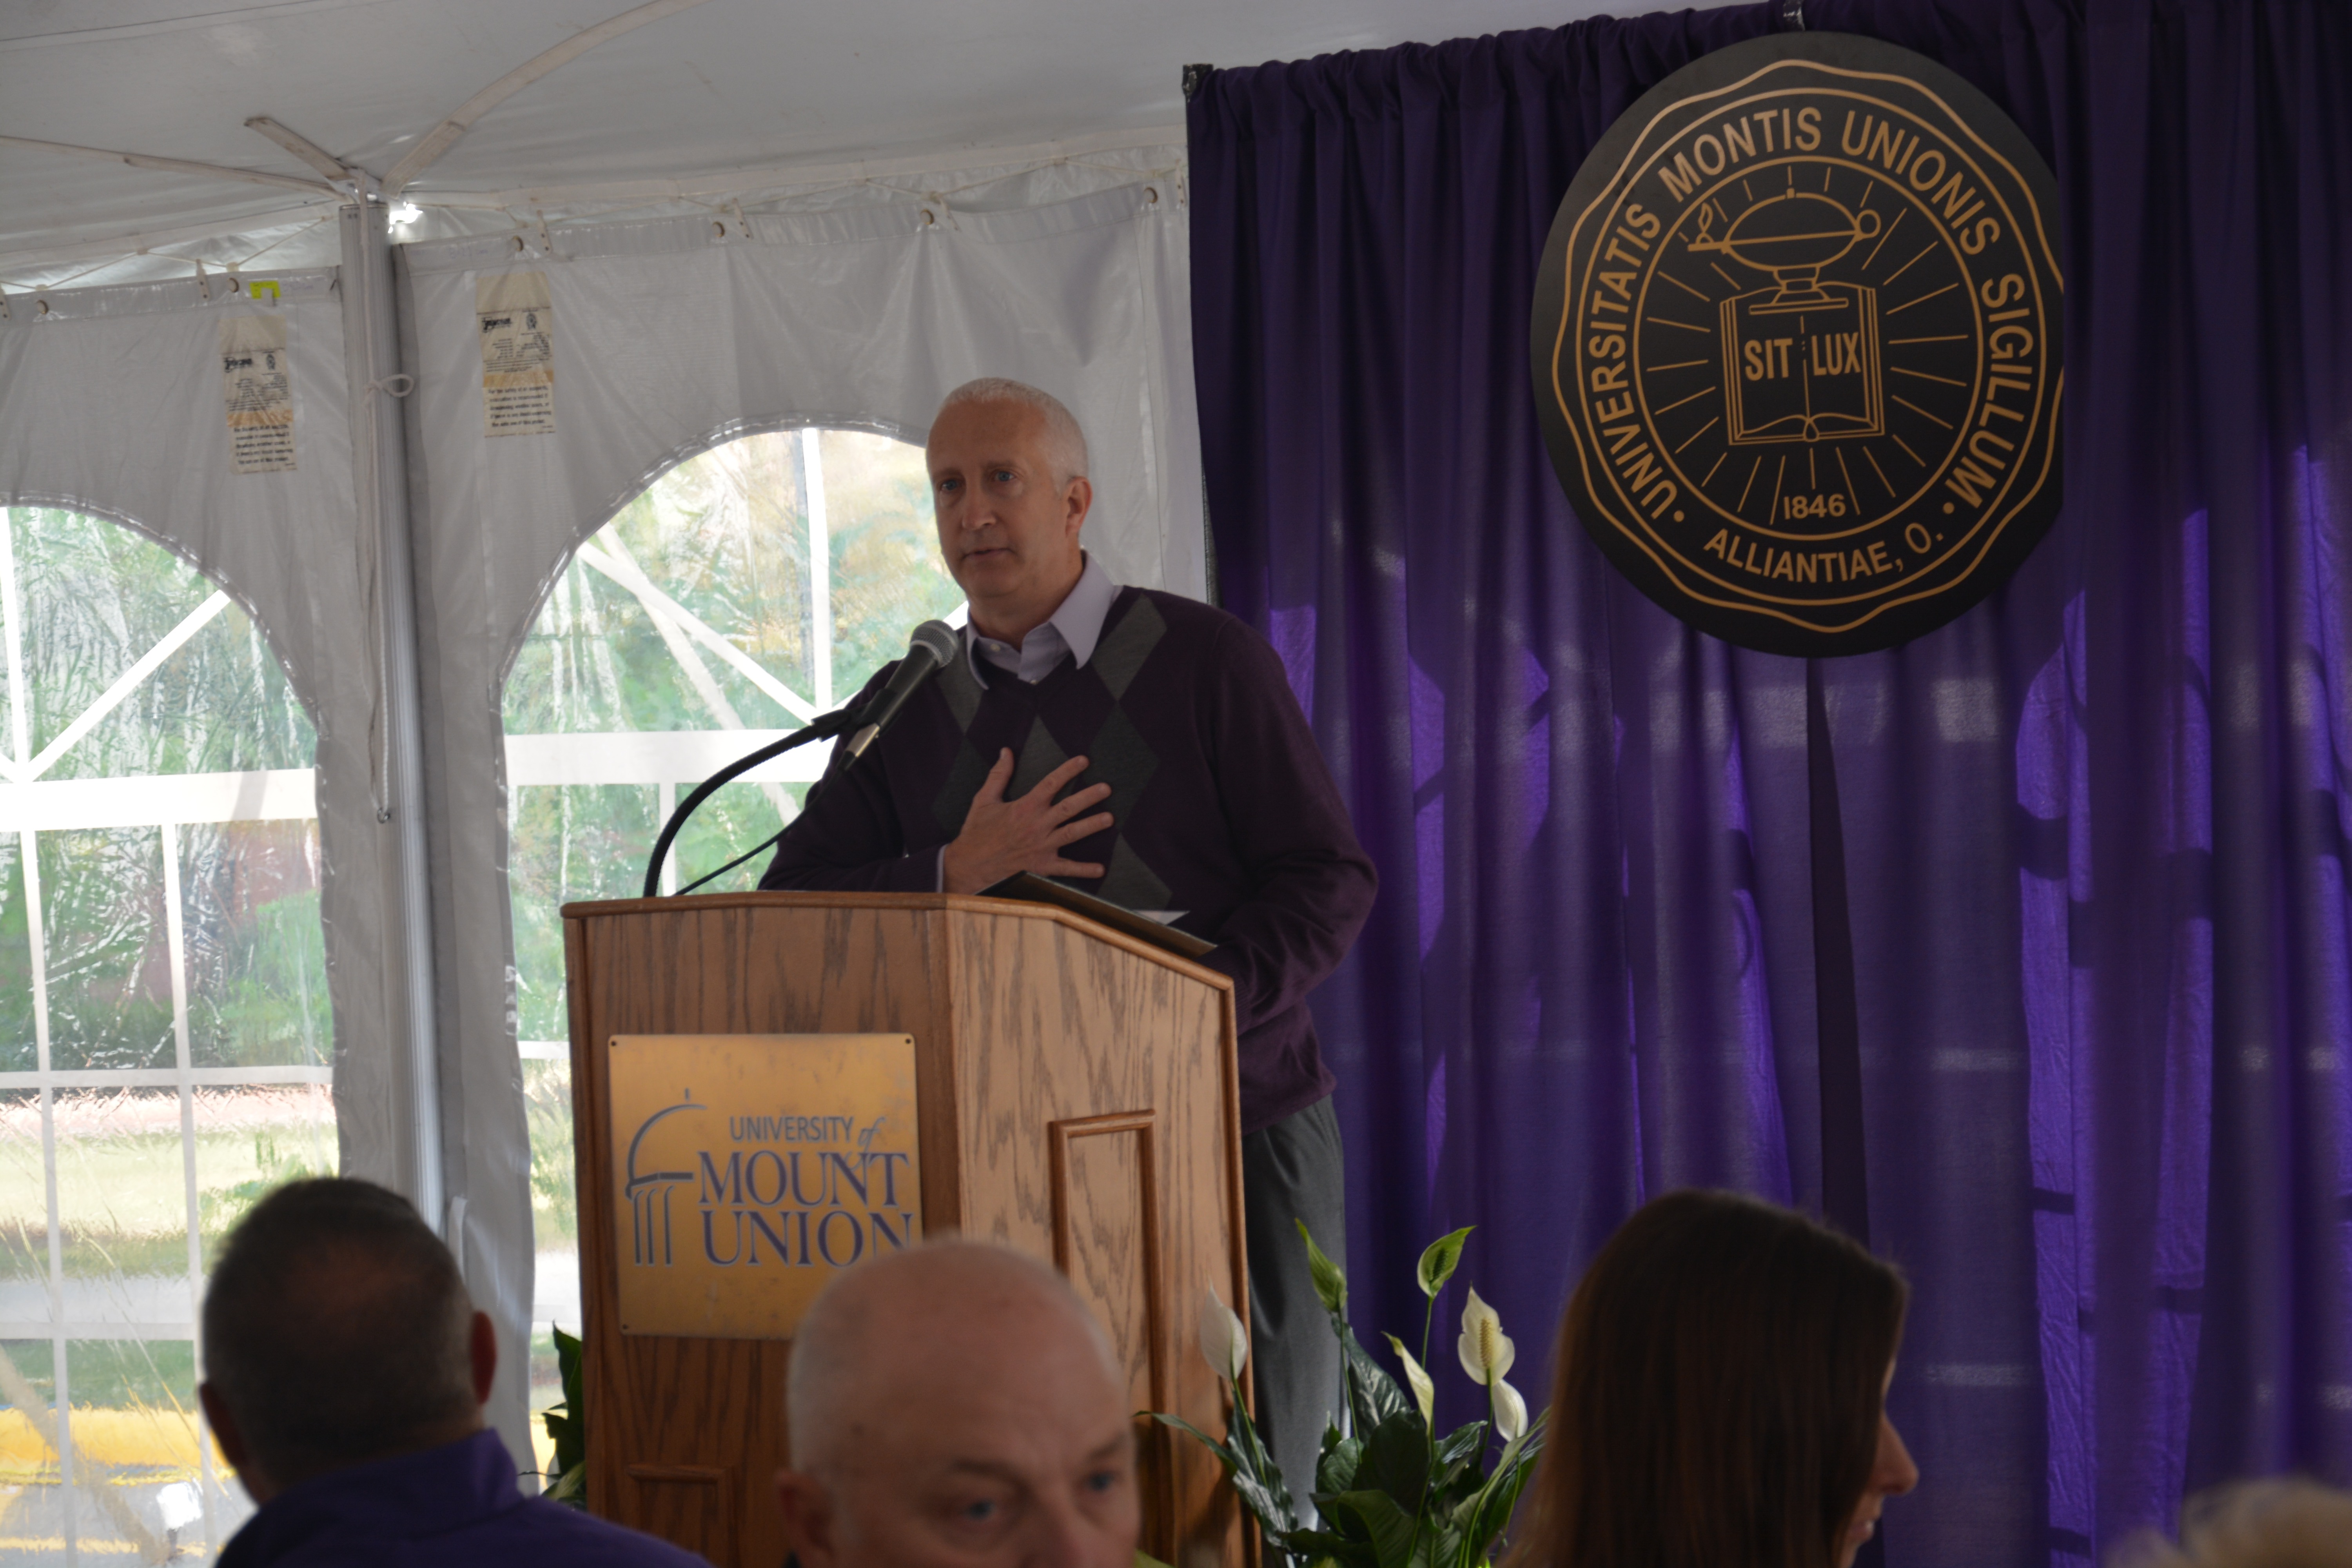 Alumni Association Former President Bill Schumacher